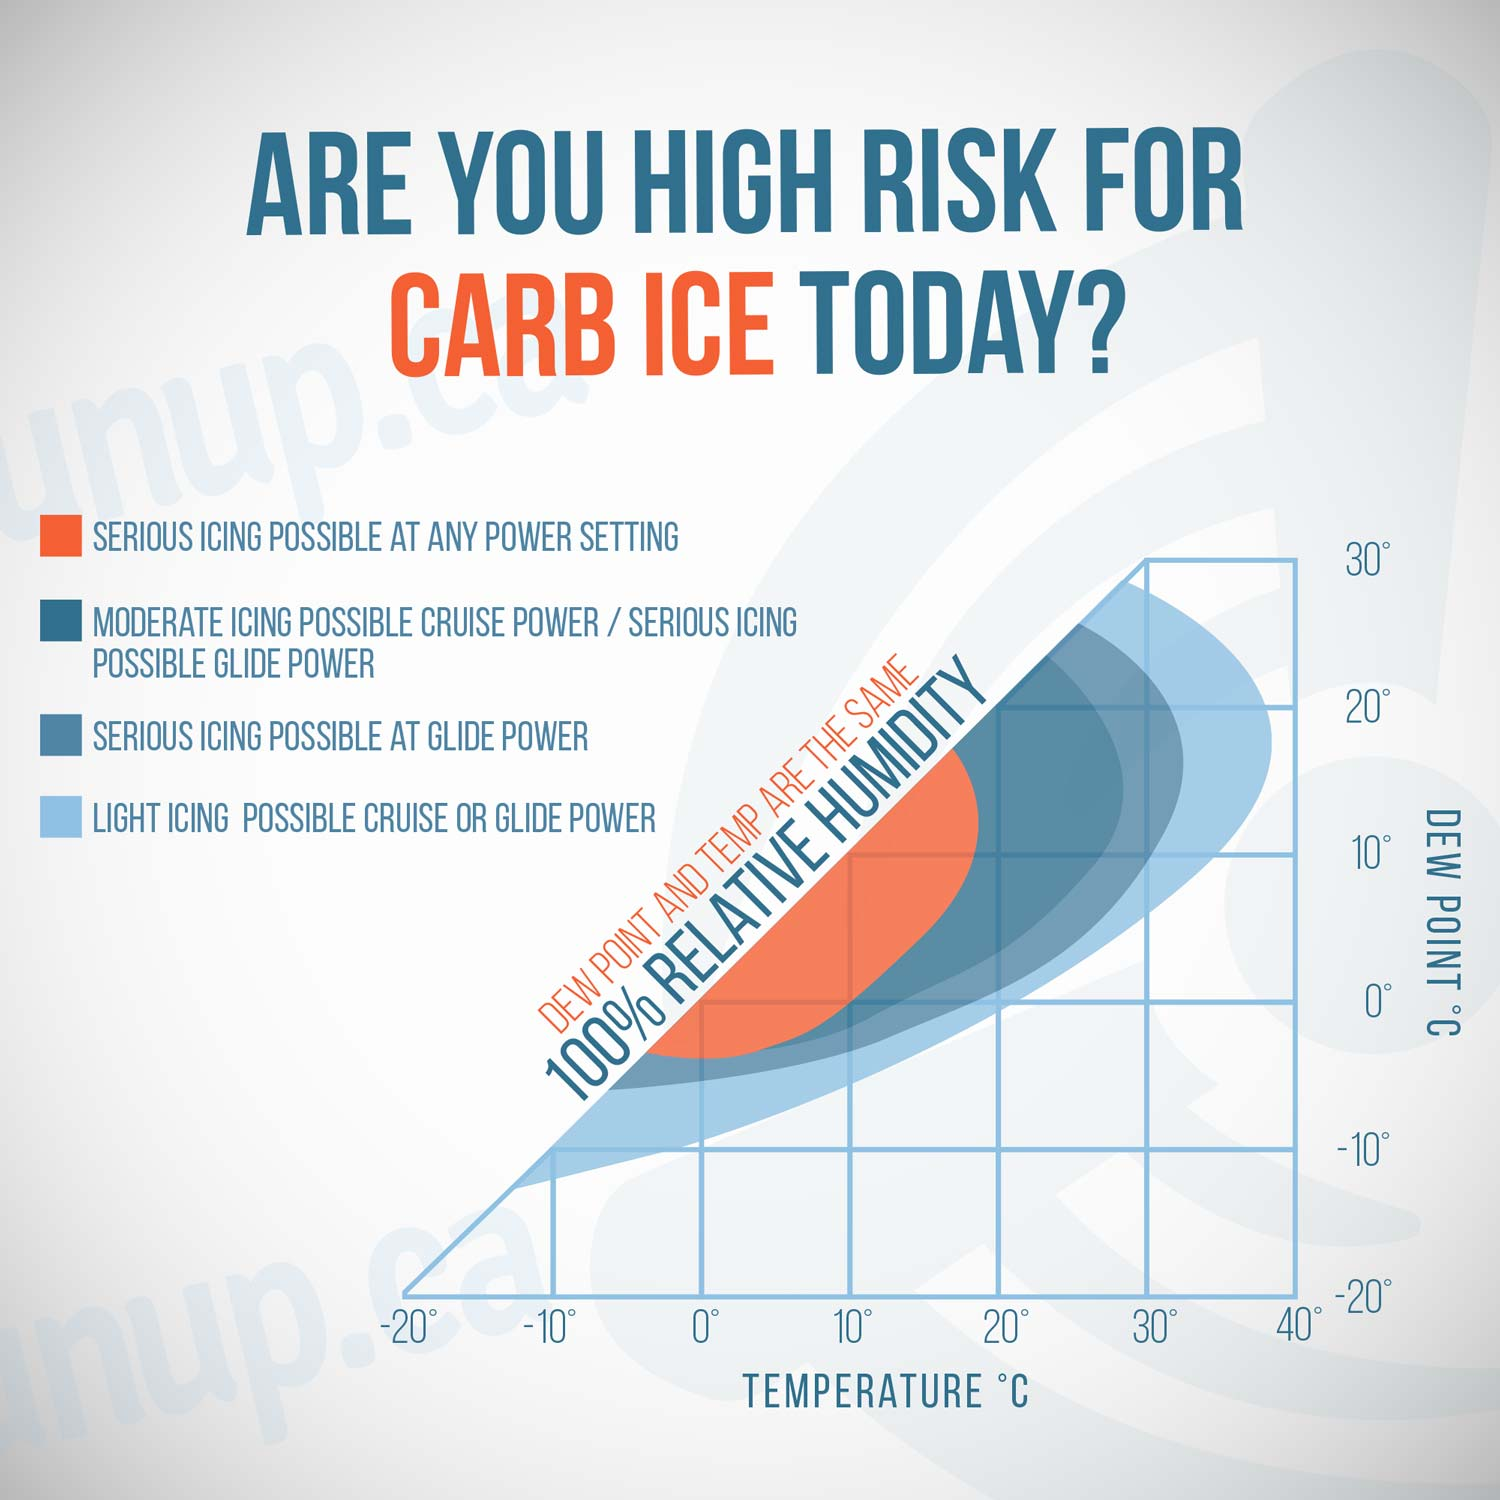 Carb Ice Risk Graph